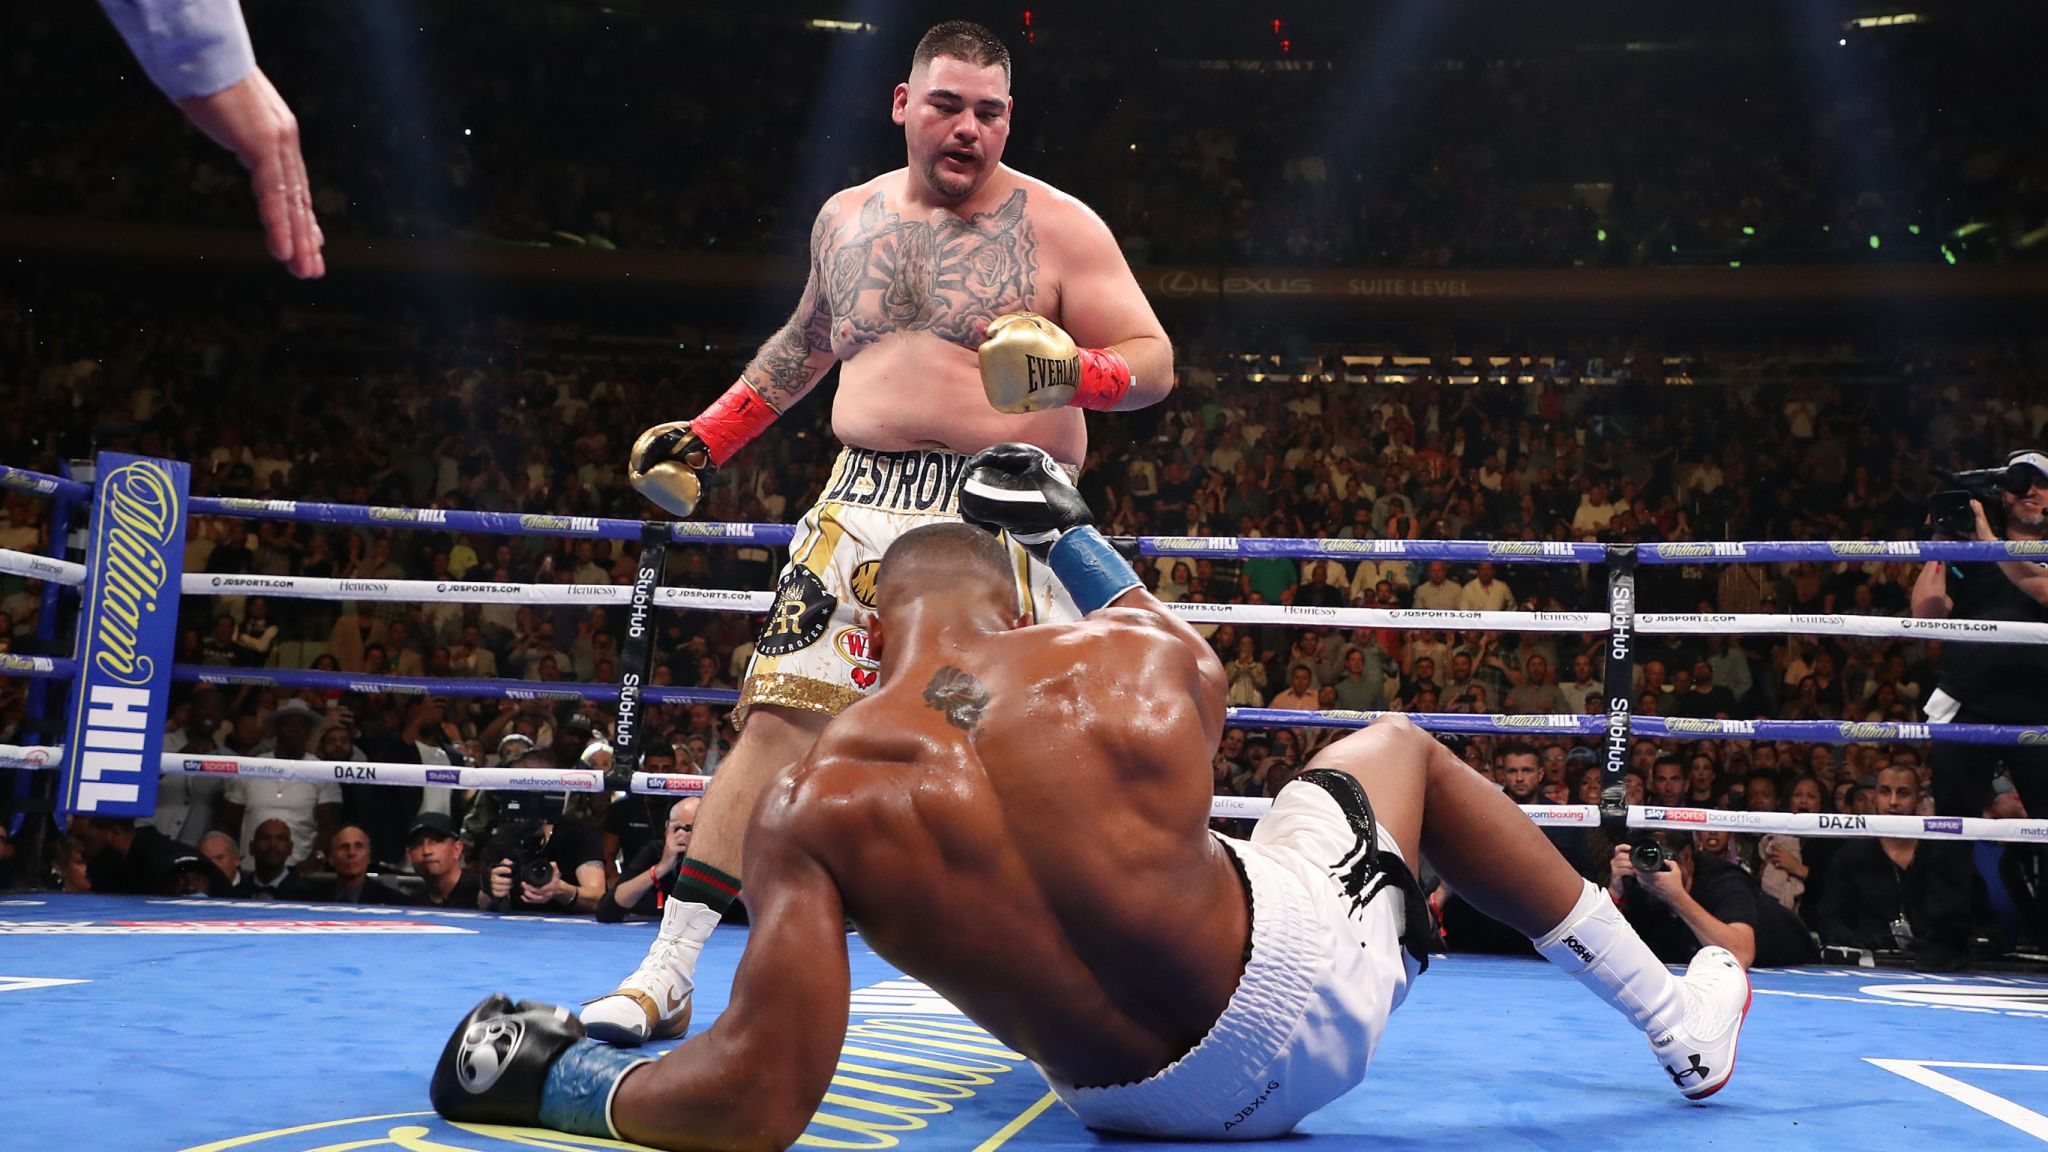 THE KING HAS LOST HIS CROWN; ANTHONY JOSHUA KNOCKED OUT!